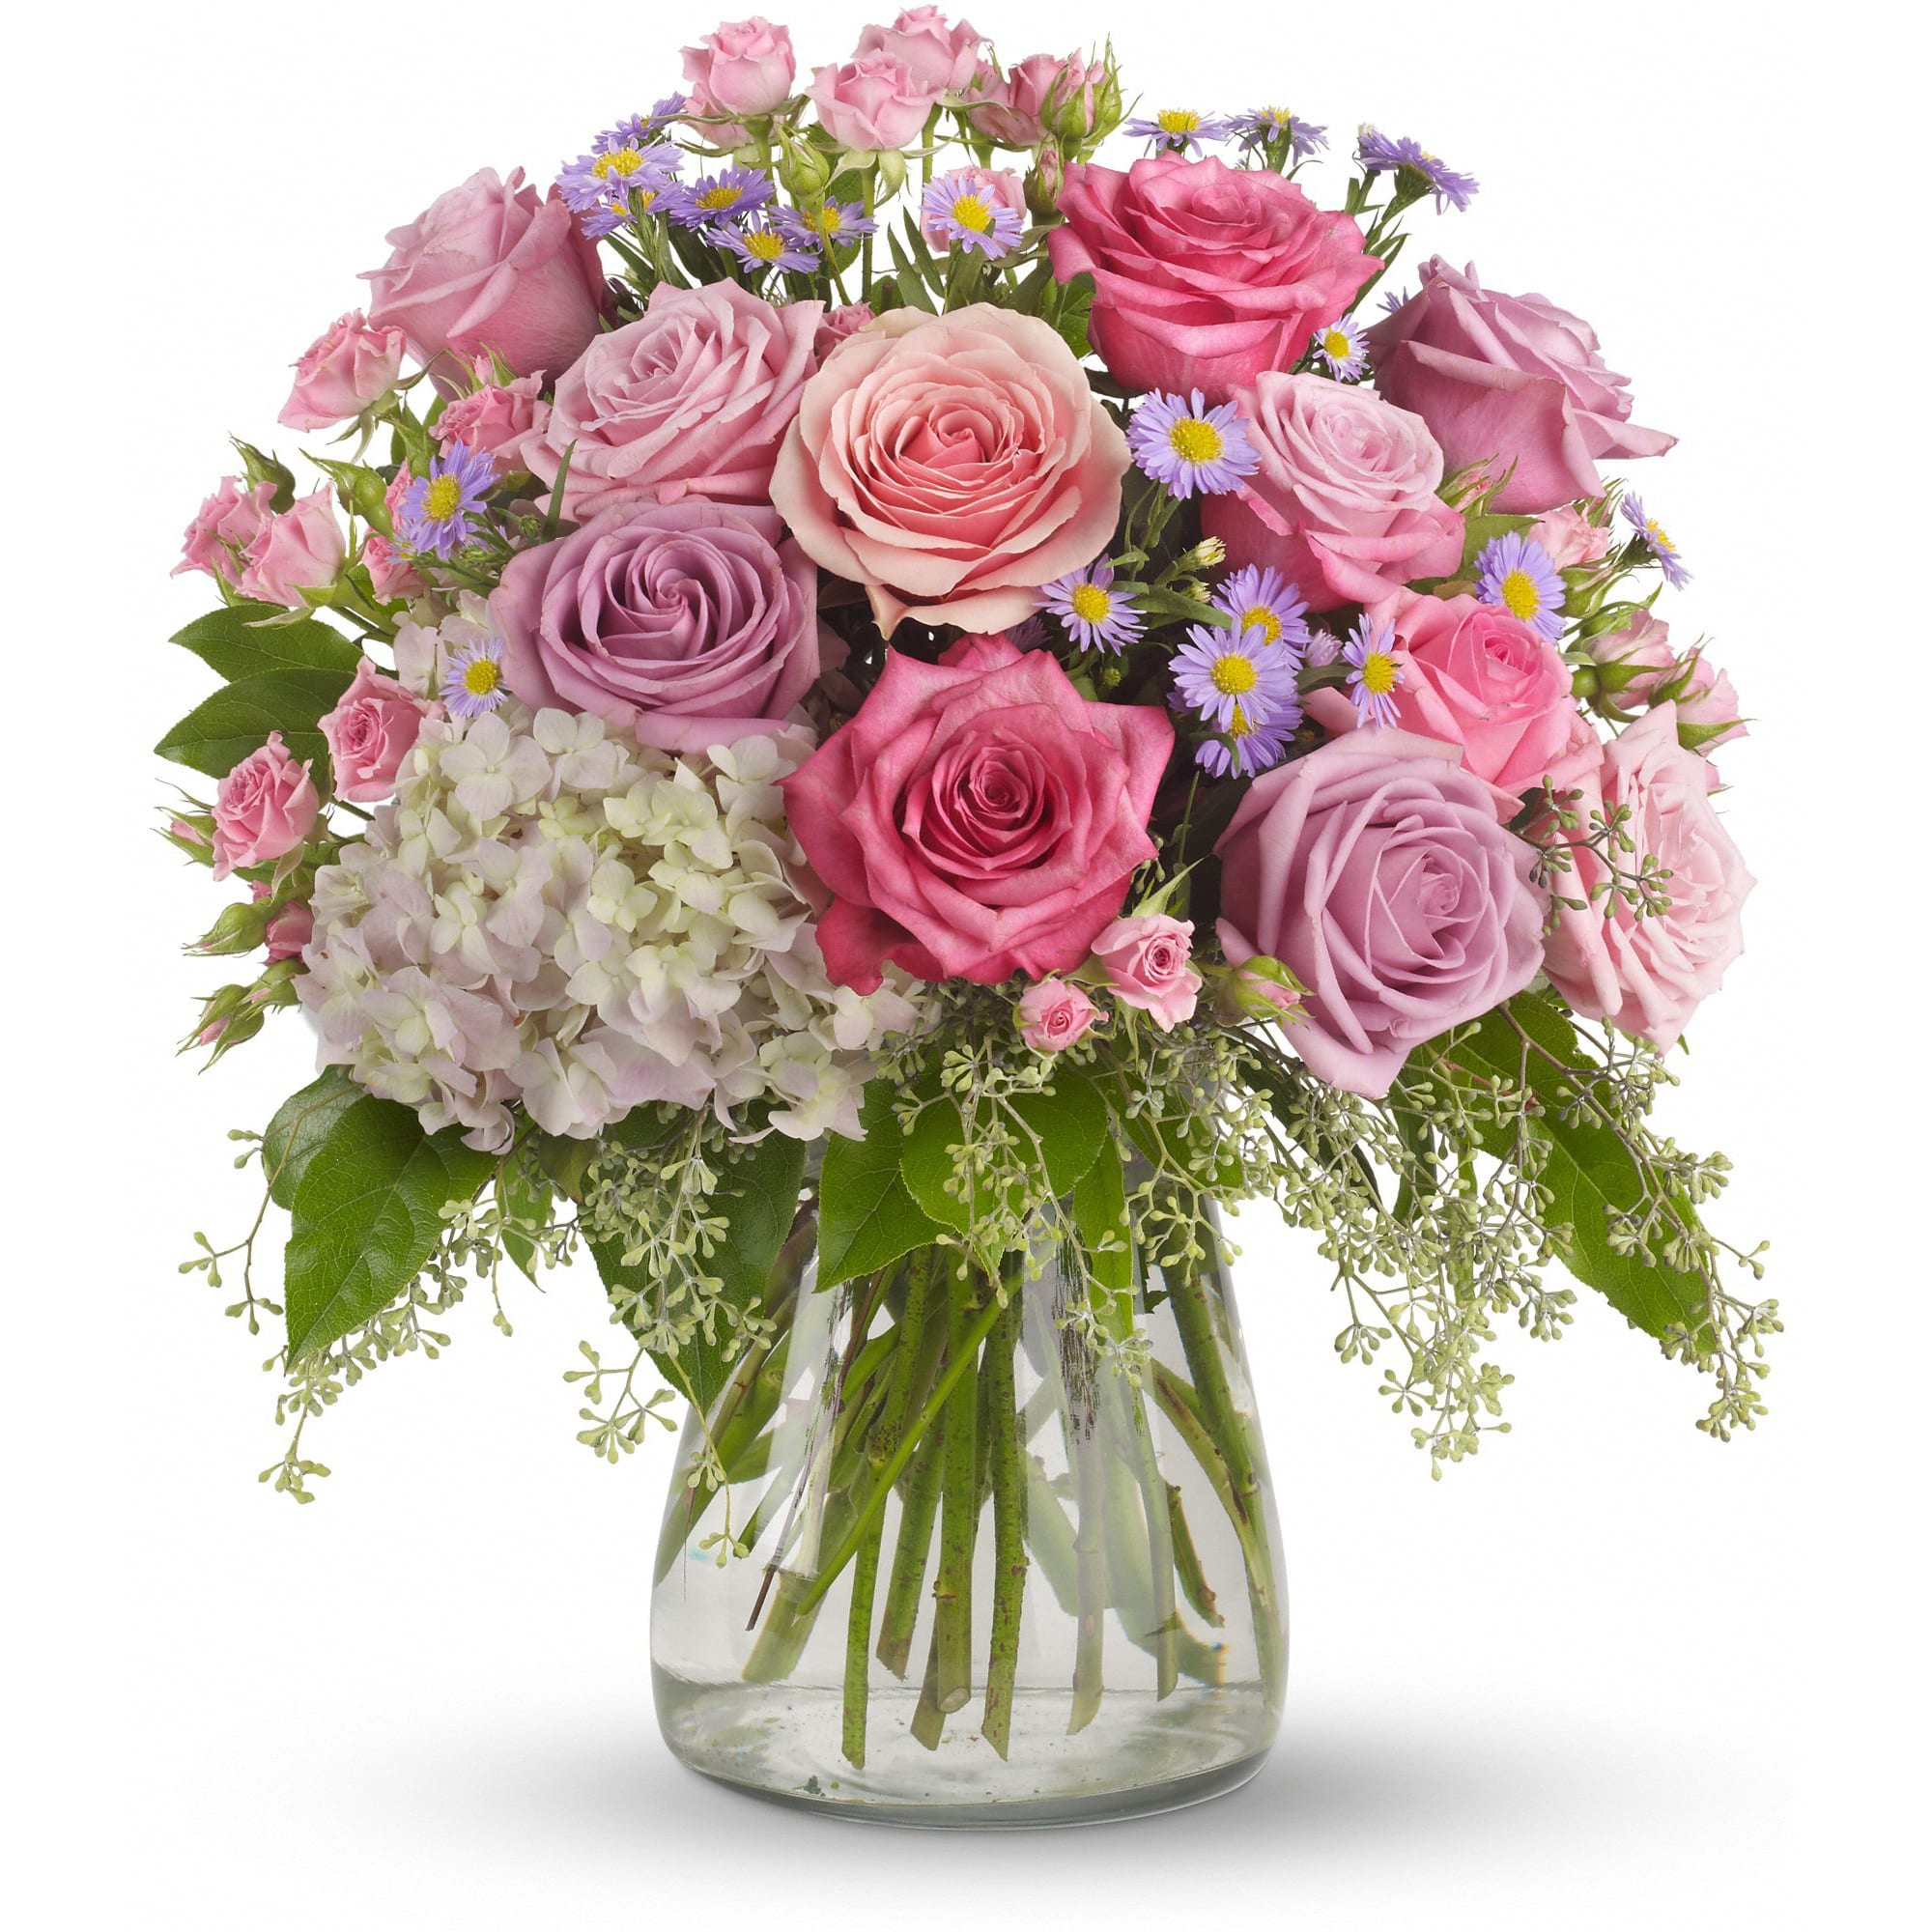 Your Light Shines By Teleflora In Bath Me Hawkes Flowers Gifts